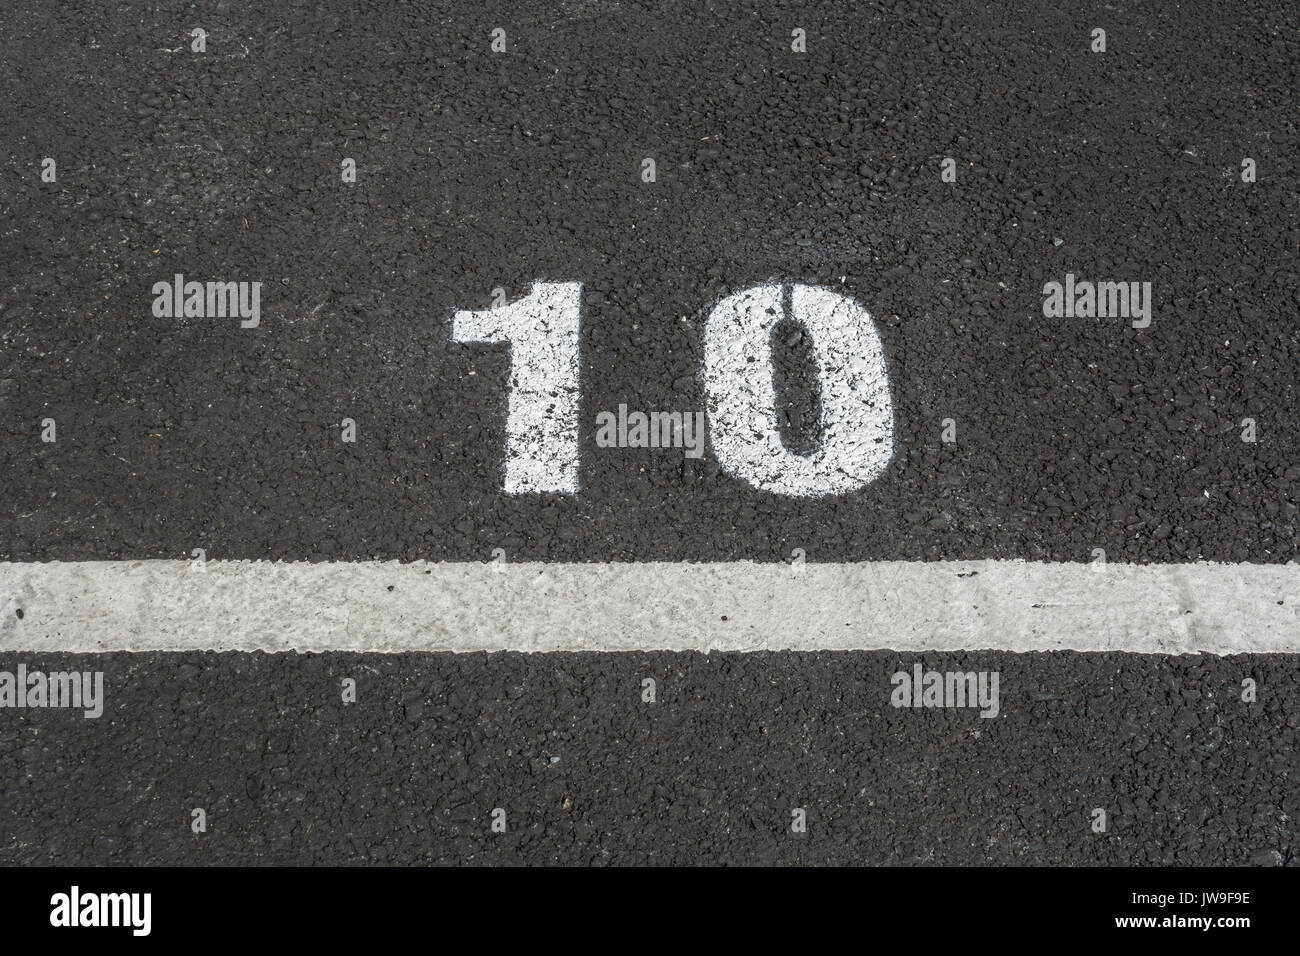 Painted number 10 on tarmac car park / parking lot space. Even number. - Stock Image